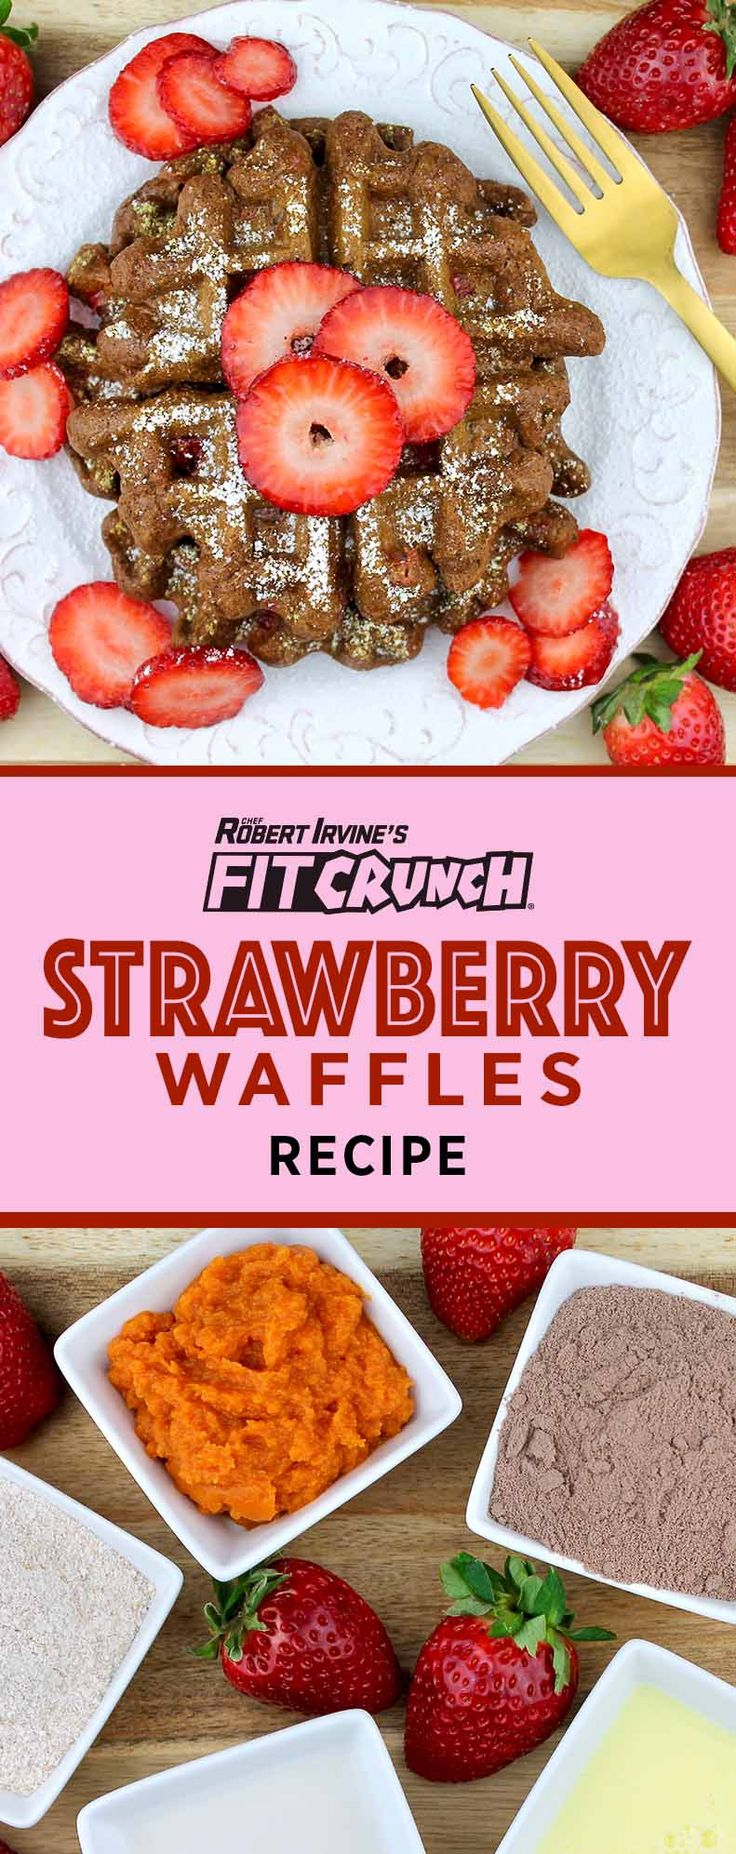 FITCRUNCH Chocolate Strawberry Waffle Indulge in the romantic combination of rich chocolate and fresh strawberries with this delicious waffle recipe. It's one thing to make breakfast for your loved one, but it's another thing to put a healthy twist on the breakfast you serve them to really show them you care. Waffles are traditionally made …